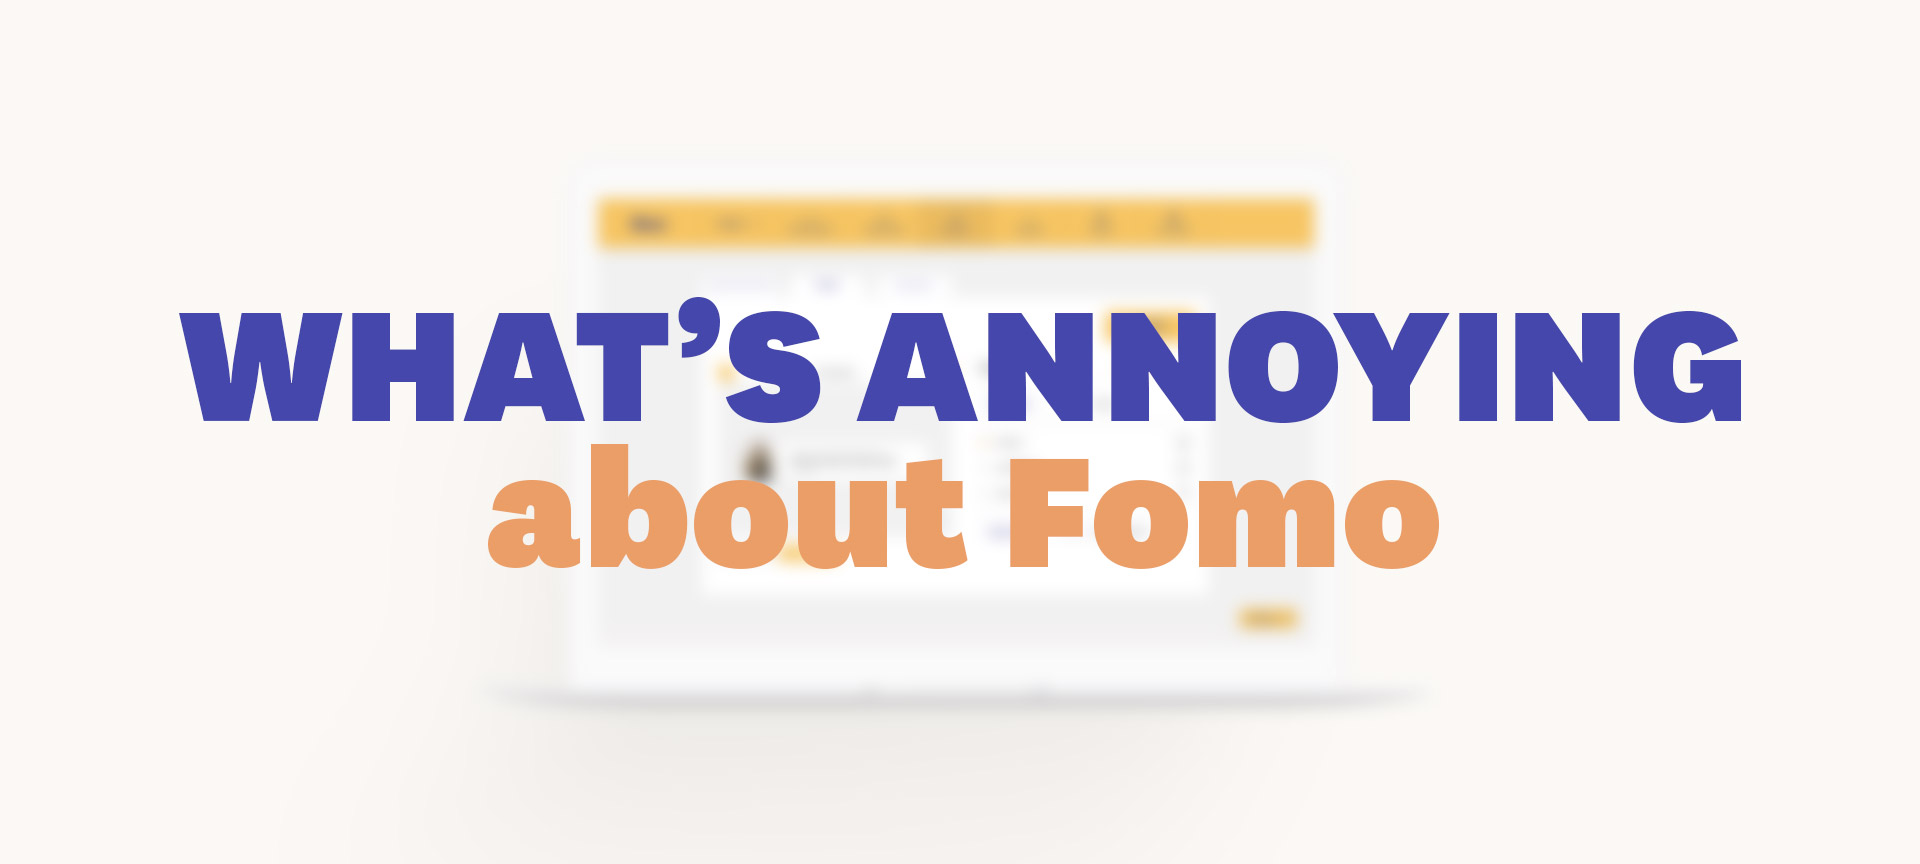 Annoying things about Fomo